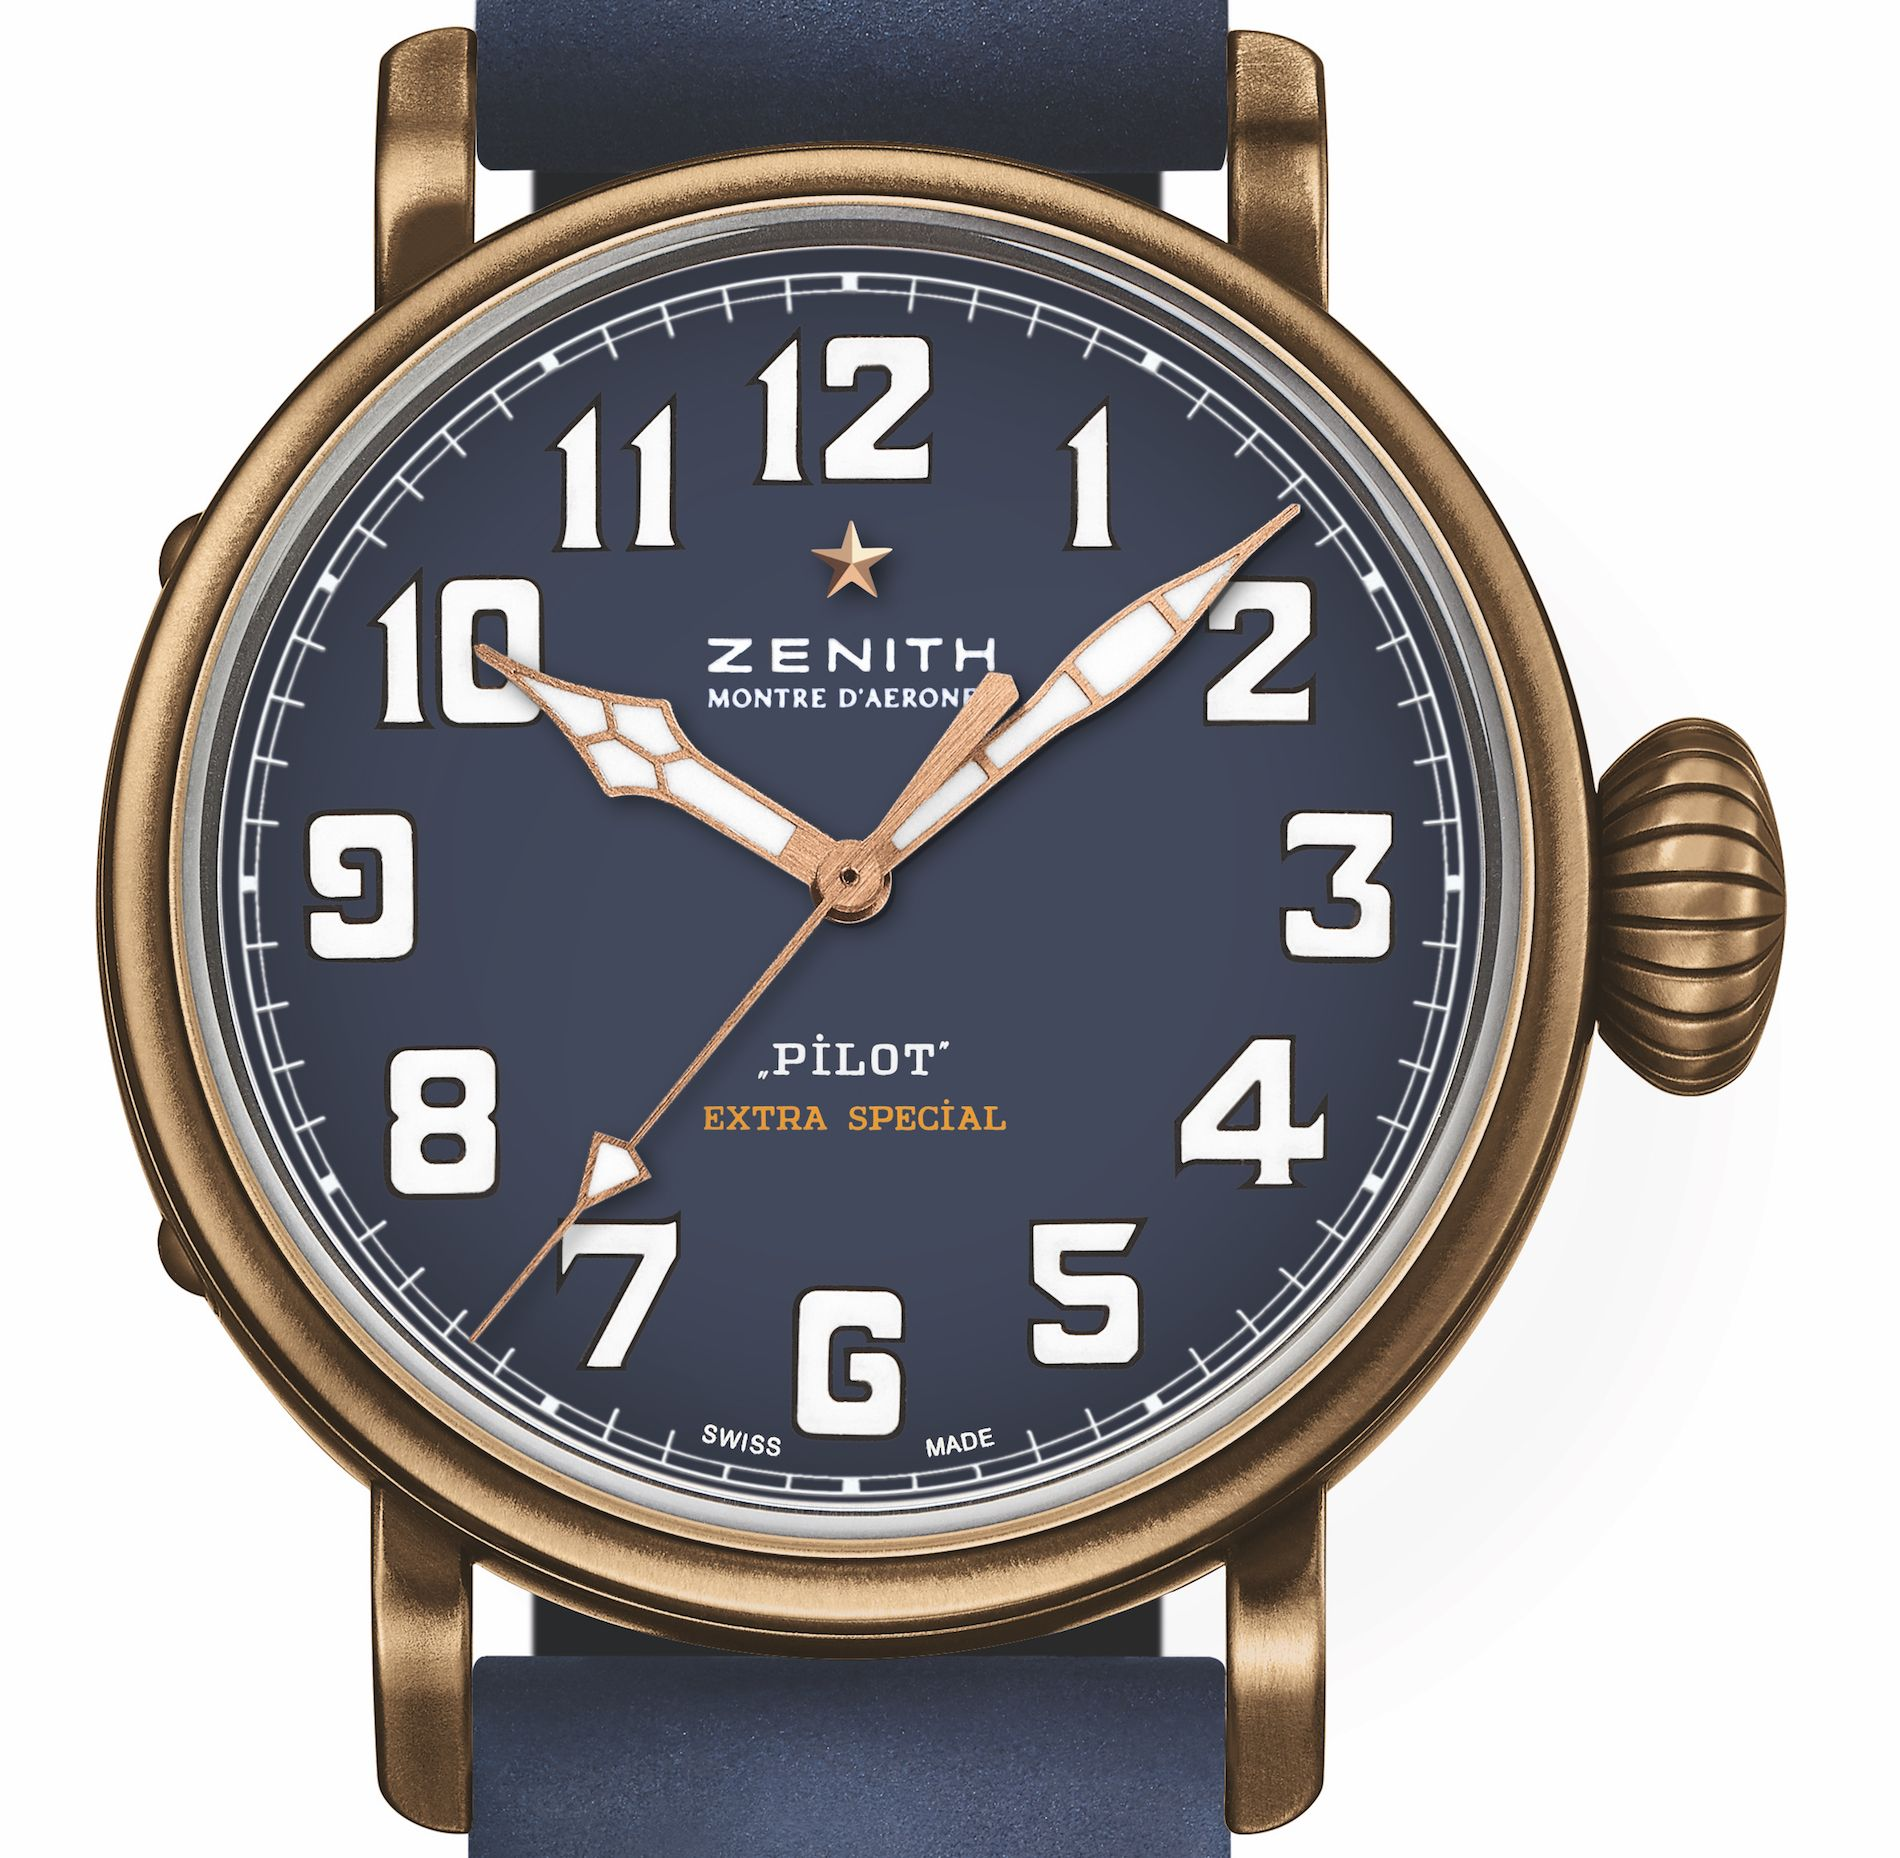 Zenith Pilot Type 20 Extra Special 40mm Bronze Watch Zenith